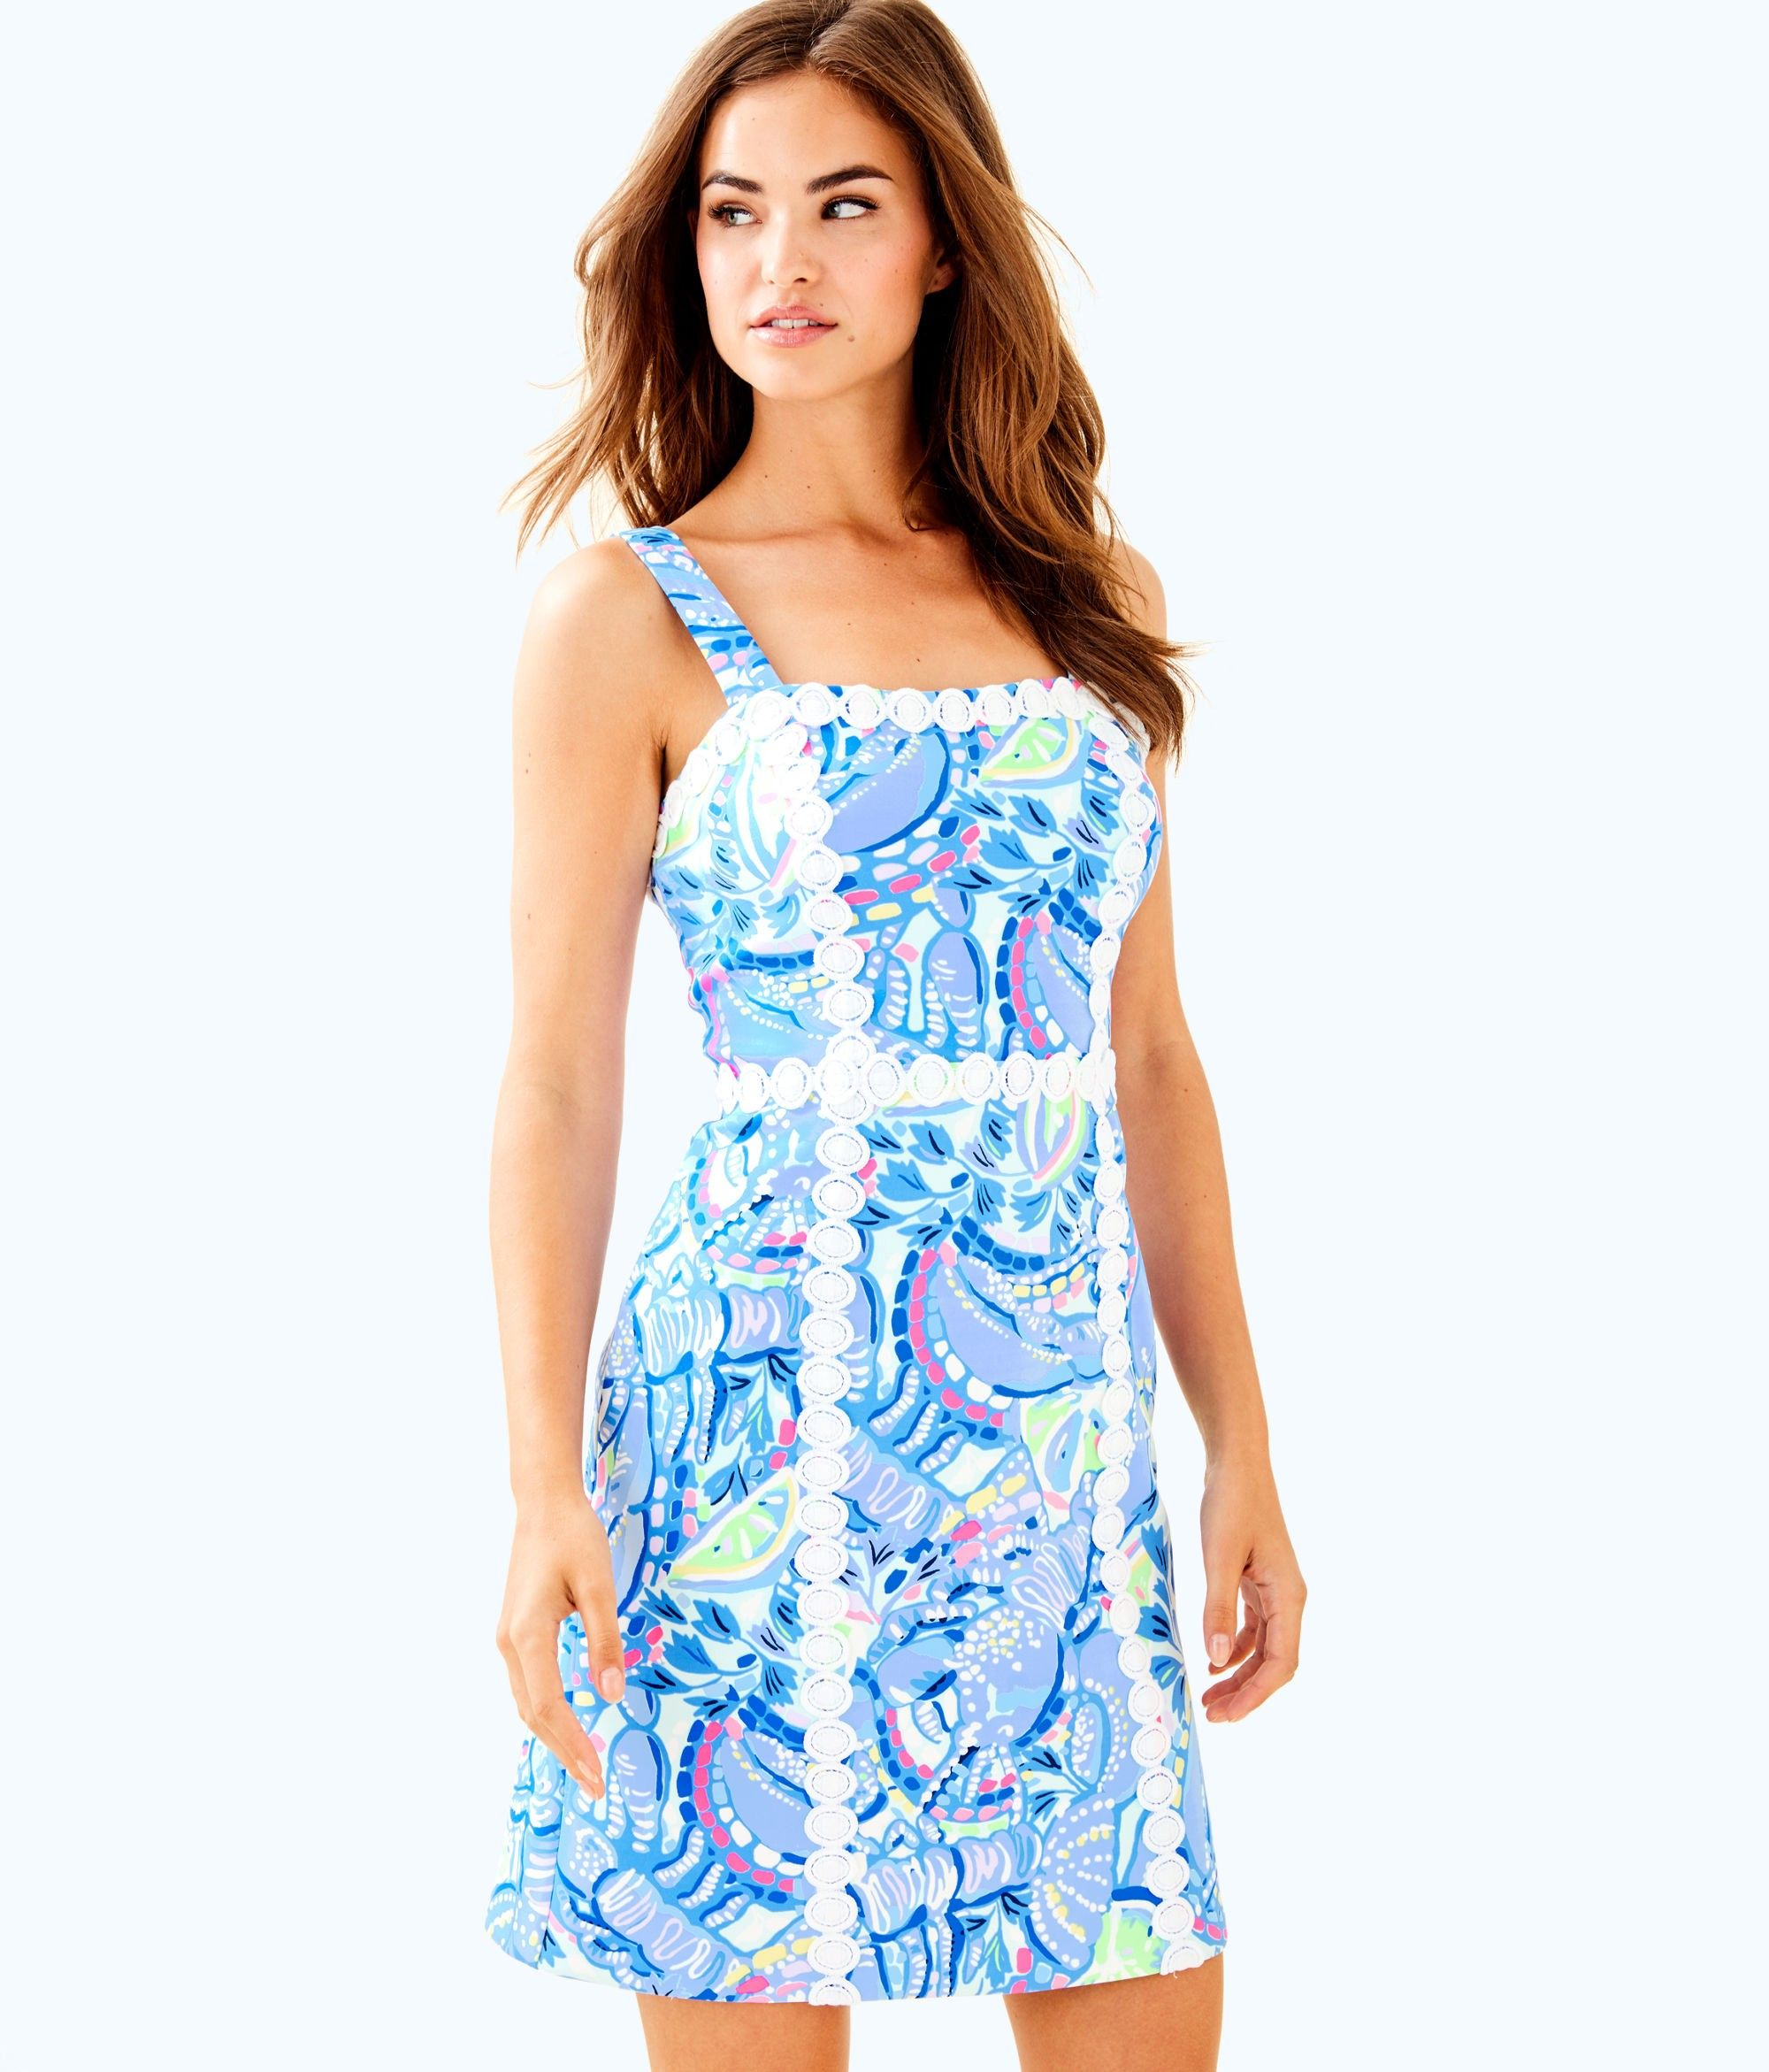 086bcd3a0177 Lilly Pulitzer Janelle Shift Dress - 4 Gold | Products | Dresses ...